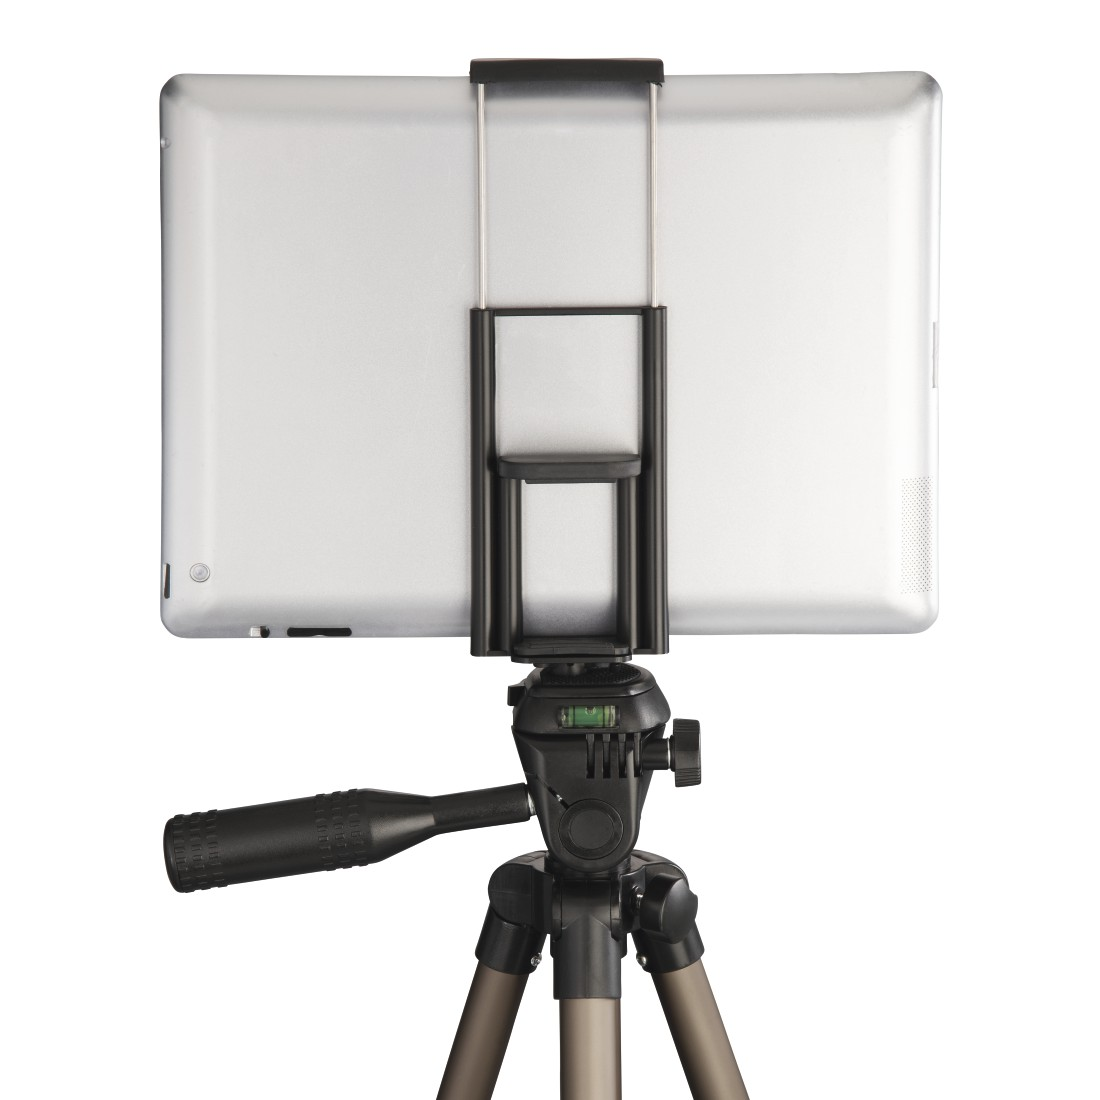 dex5 High-Res Detail 5 - Hama, Tripod for Smartphone/Tablet, 106 - 3D